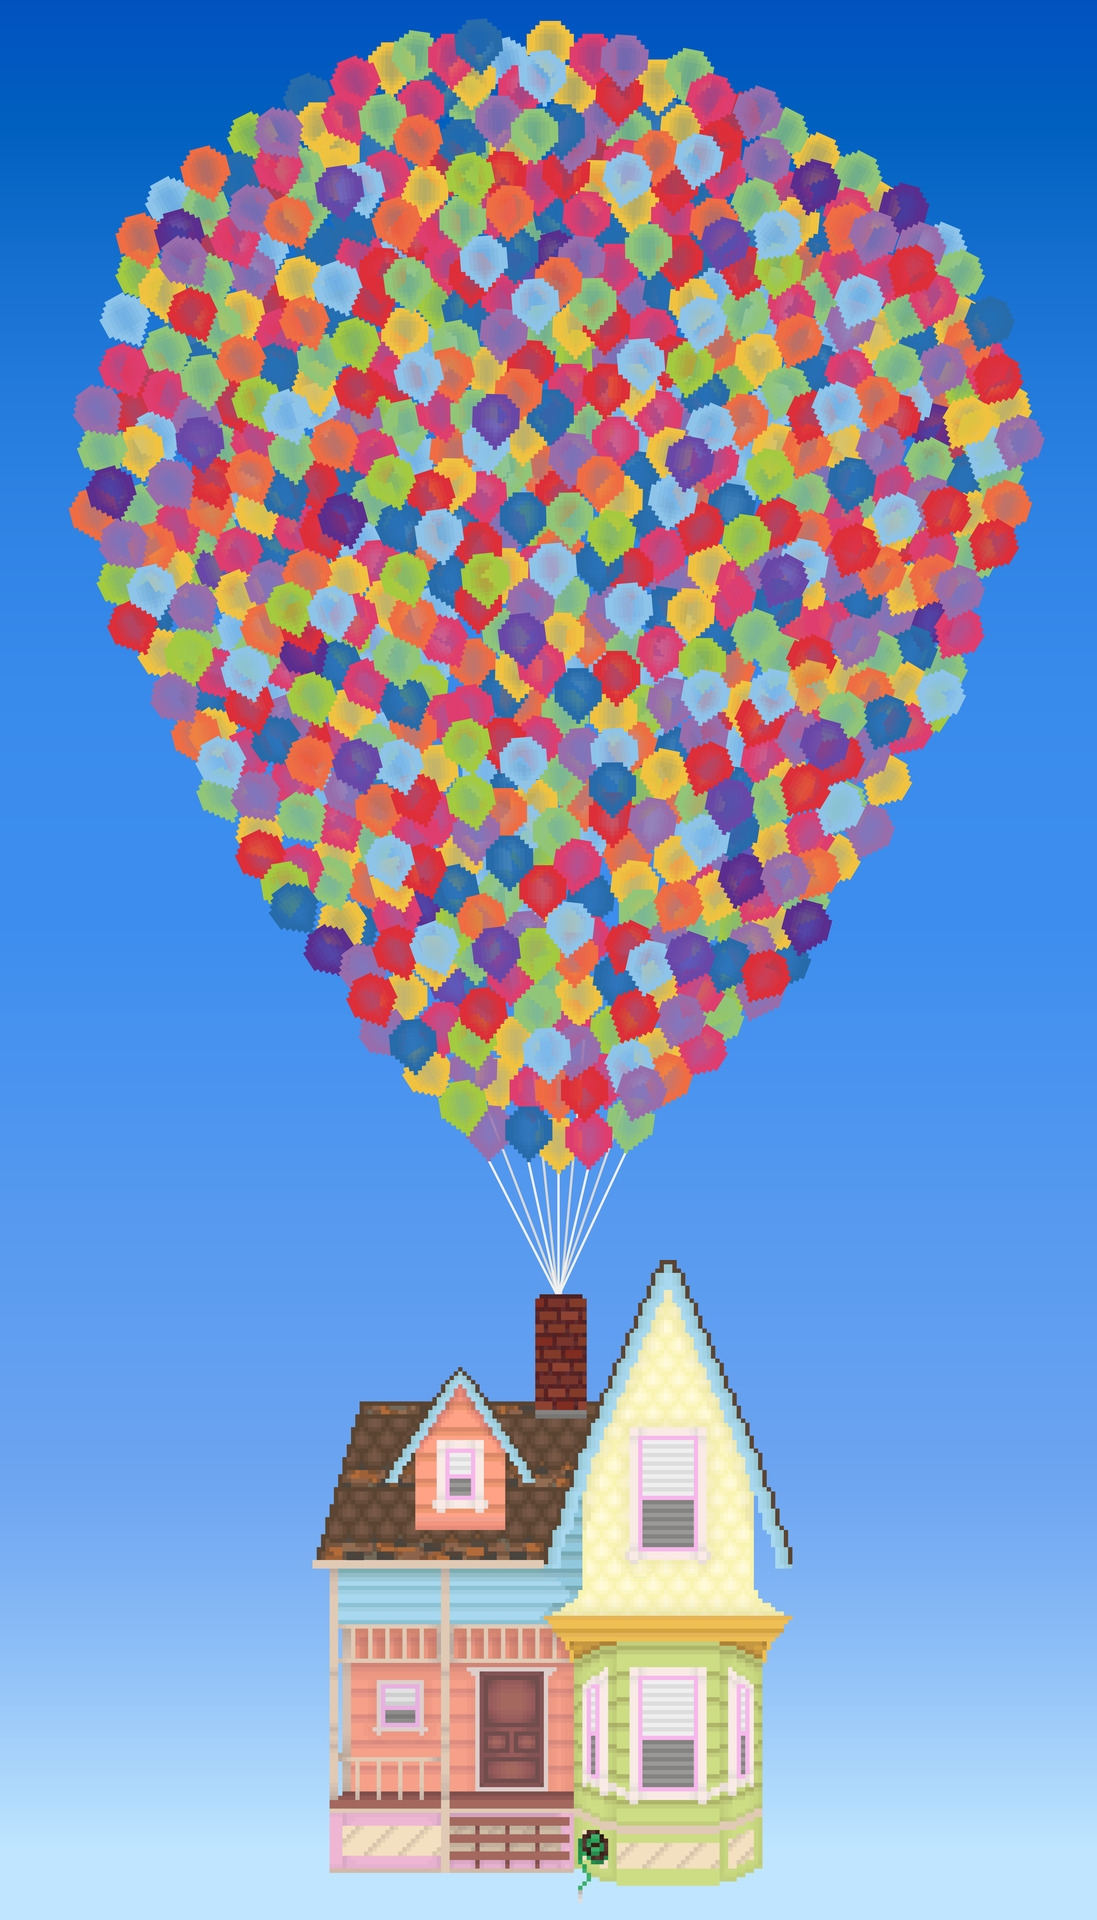 Balloon clipart house. Up drawing at getdrawings